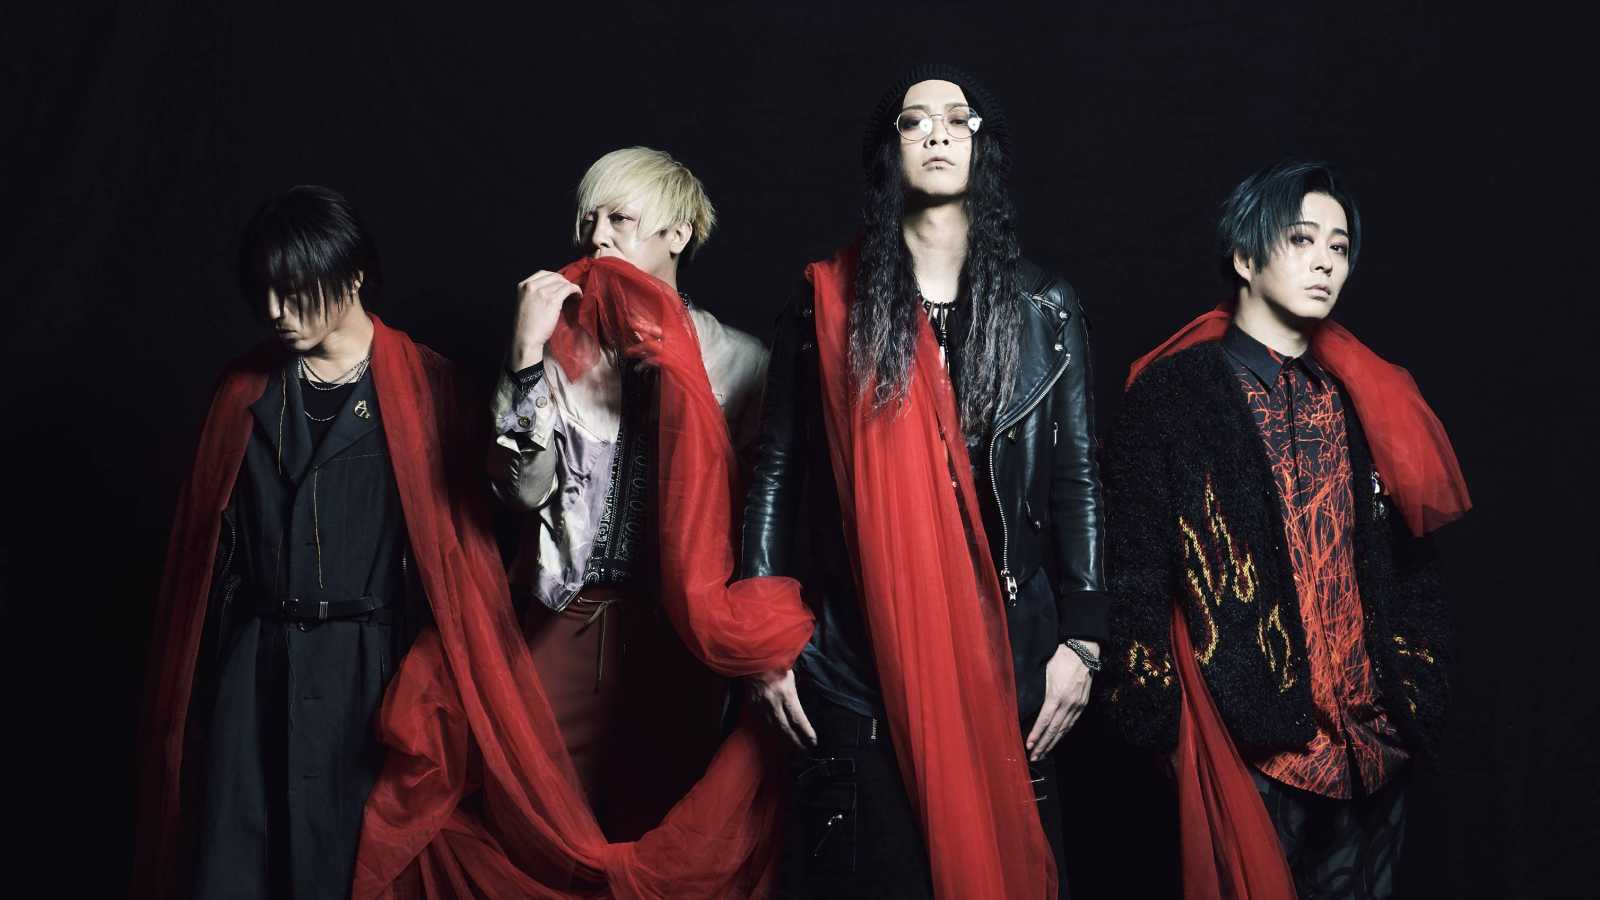 MUCC Release Two Songs from New Album and Unveil Special Live Video © MUCC. All rights reserved.